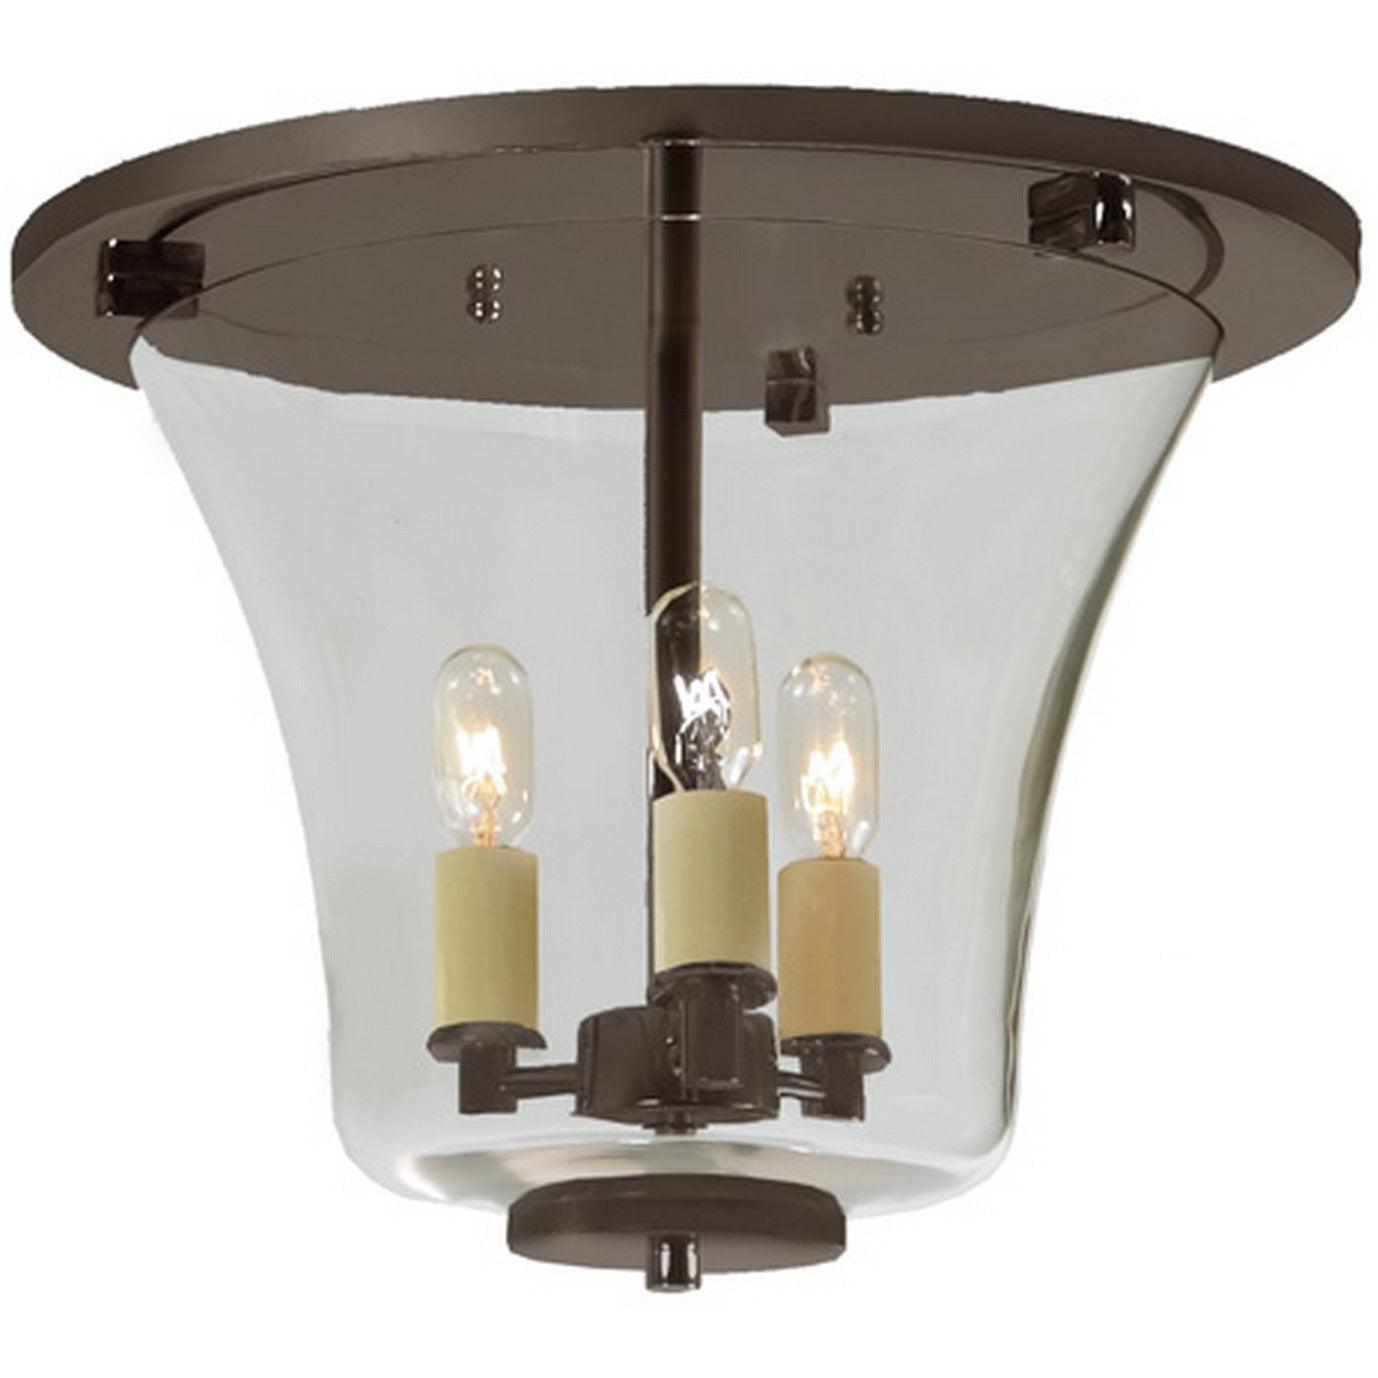 JVI Designs - 1181 - Flush Mount - Greenwich - Oil Rubbed Bronze